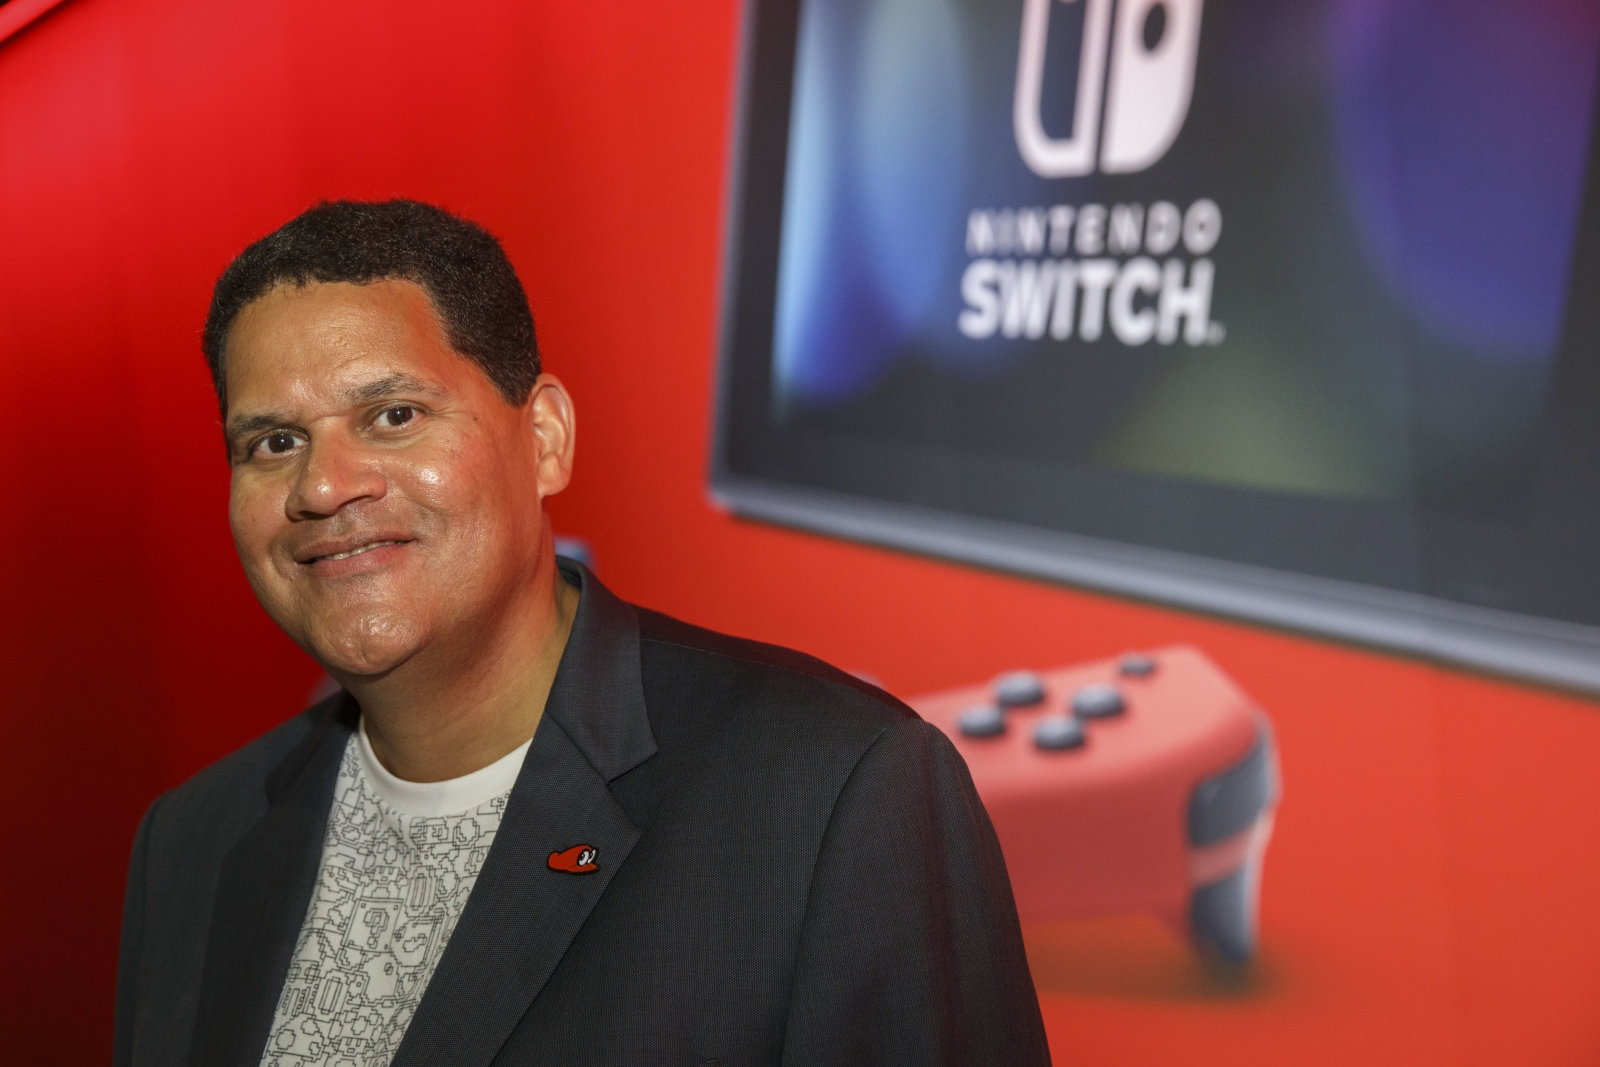 Nintendo's Reggie Fils-Aime on the first year of Switch and beyond | DeviceDaily.com